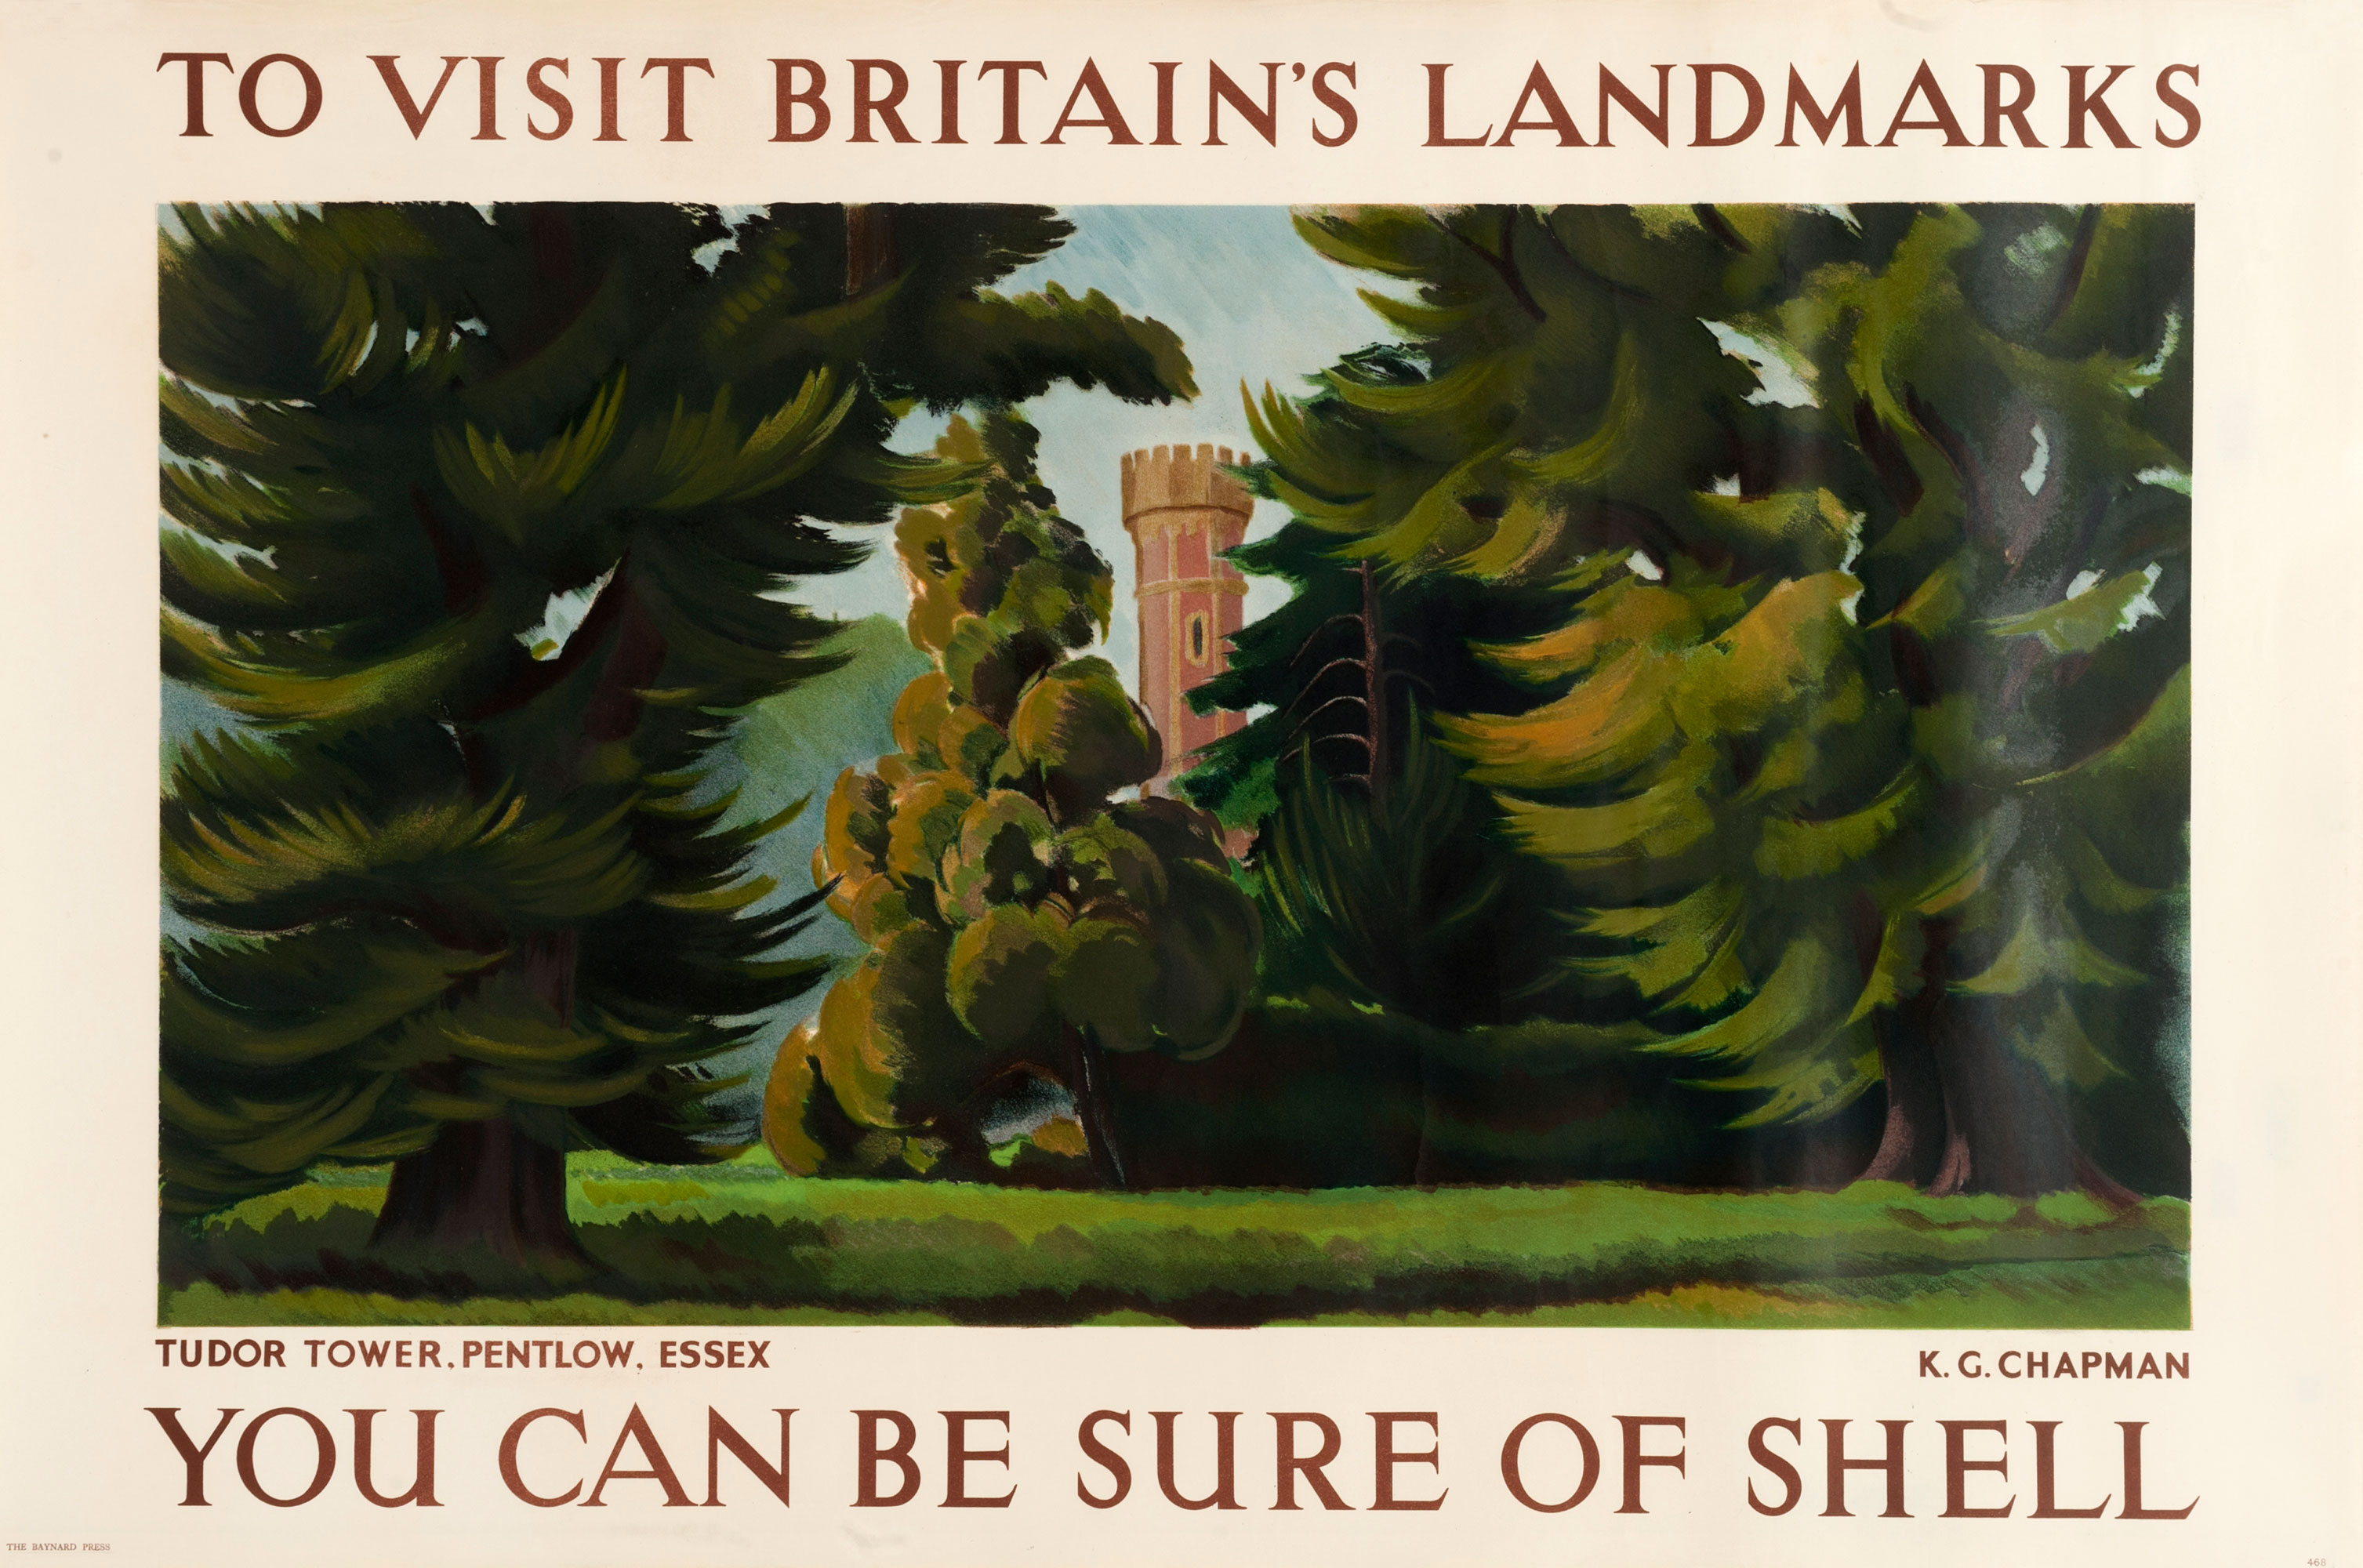 Shell poster number 468, Tudor Tower at Pentlow, Essex by K.G. Chapman. Painting of the Tudor Tower at Pentlow, surrounded by trees.